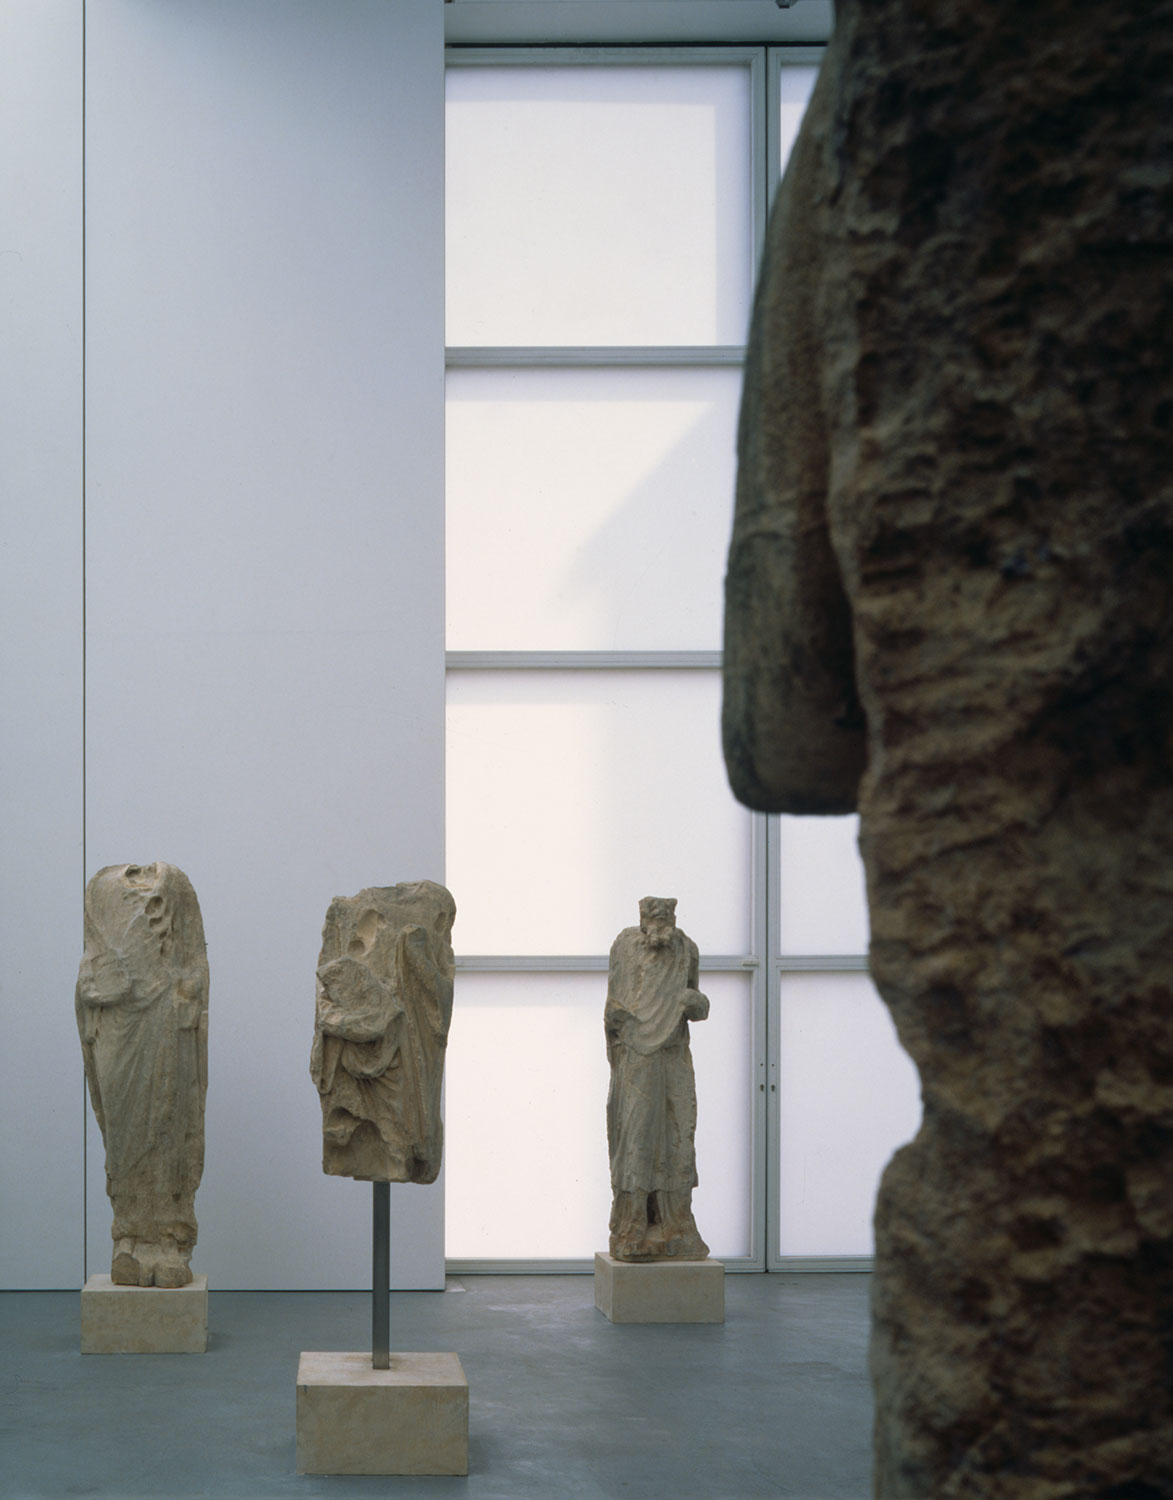 Installation view of Romanesque: Stone Sculpture from Medieval England